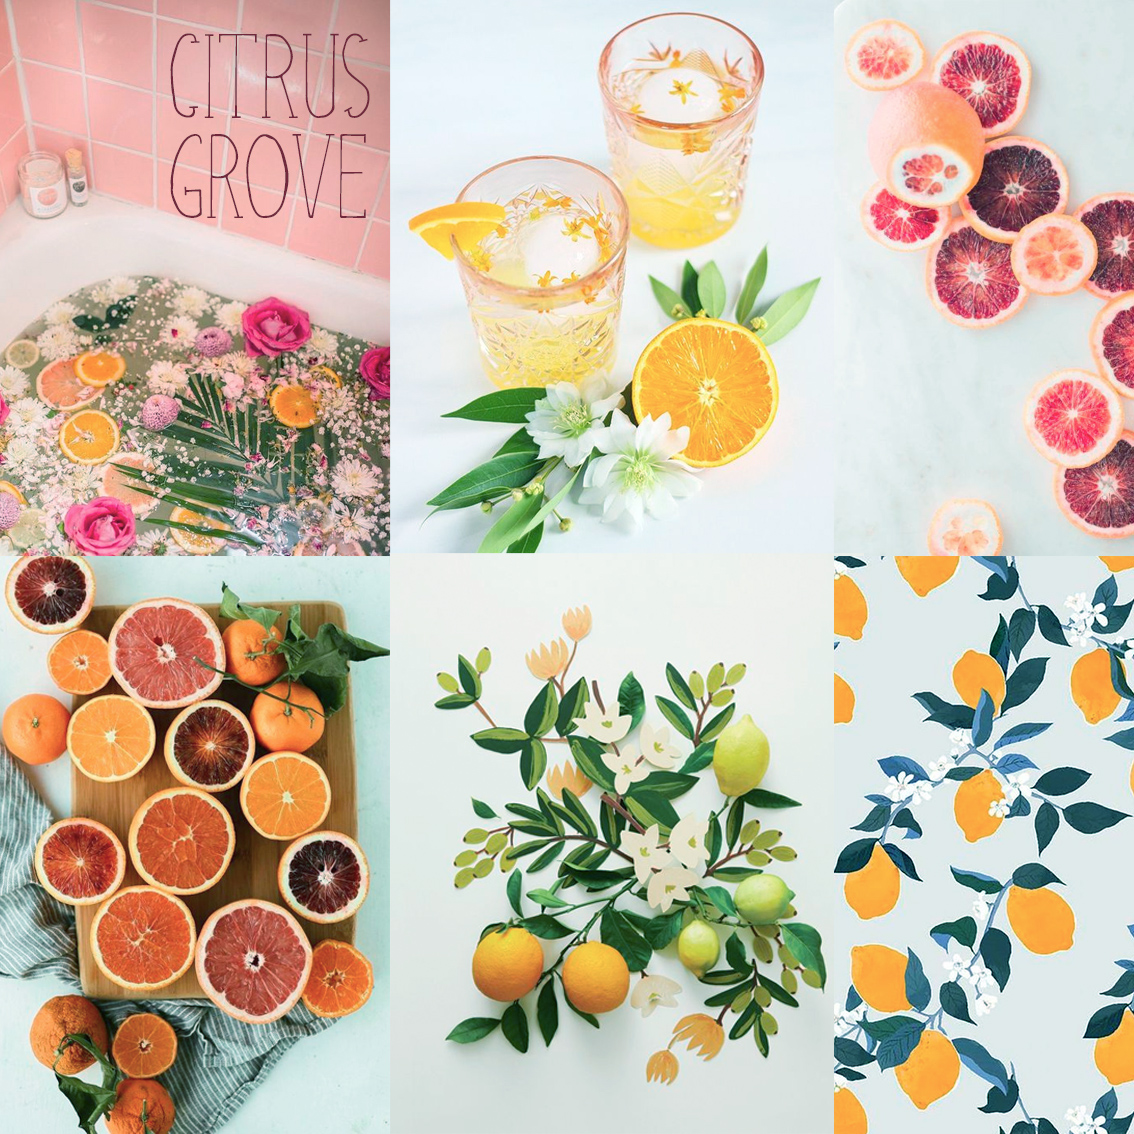 Citrus Grove Mood Board